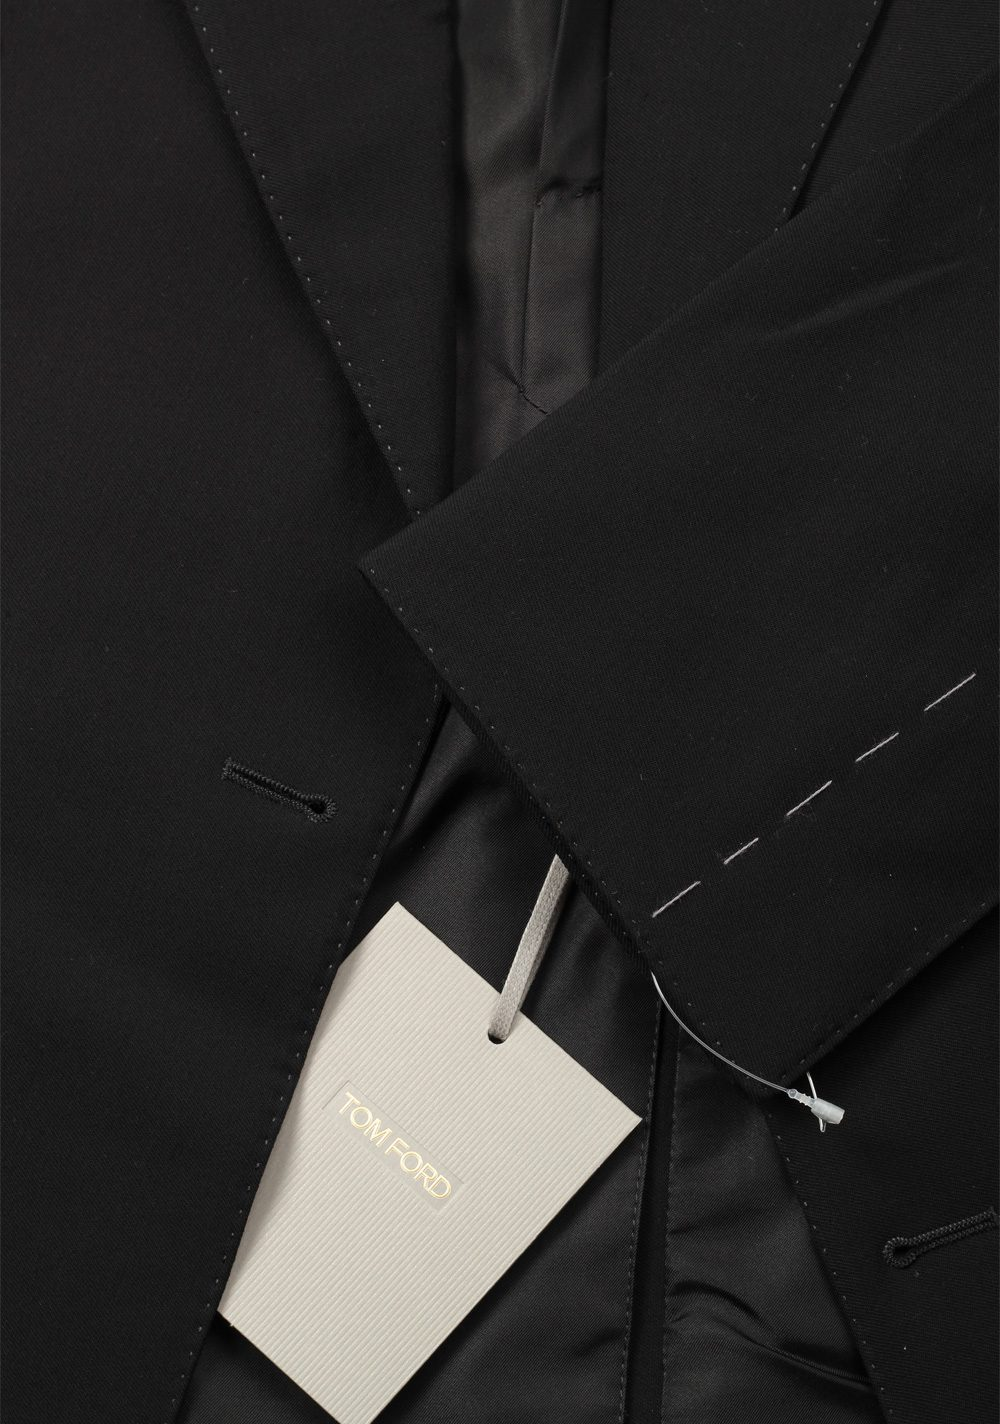 TOM FORD Shelton Double Breasted Solid Black Suit Size 46 / 36R U.S. | Costume Limité